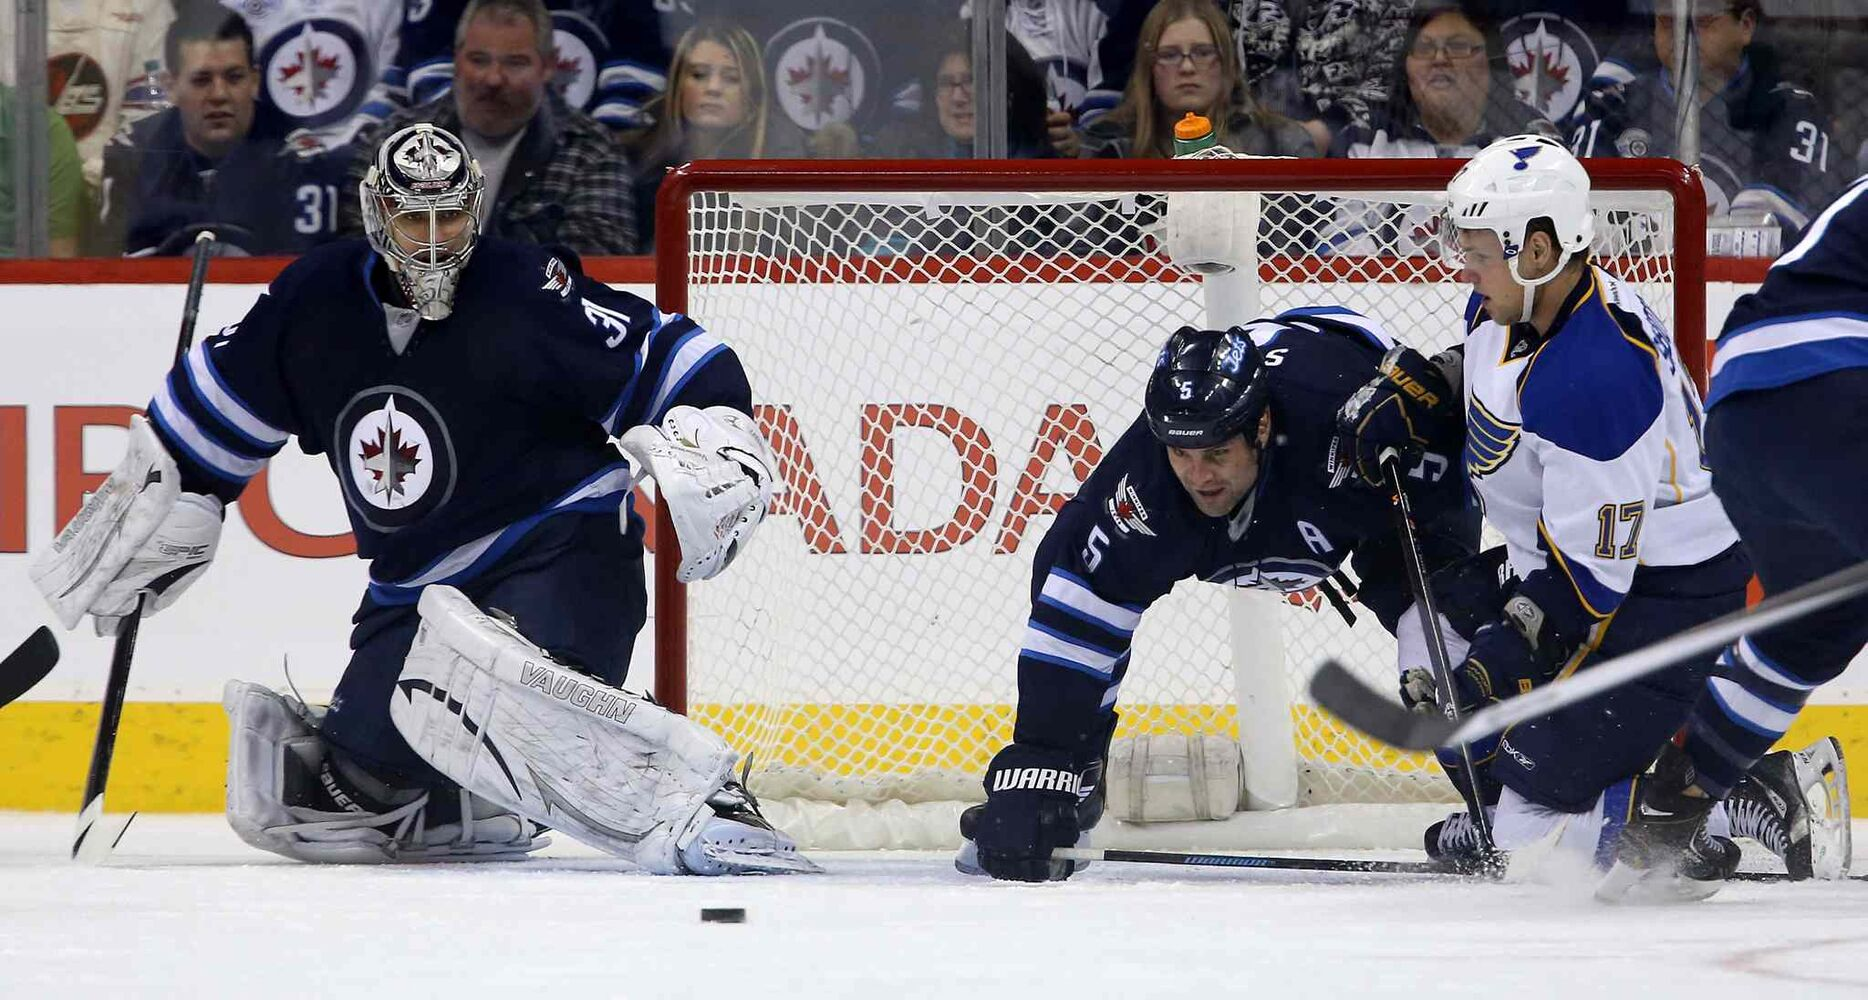 Winnipeg Jets goaltender Ondrej Pavelec watches as Jets defenceman Mark Stuart and St. Louis Blues' Vladimir Sobotka battle for the puck during the second period. (TREVOR HAGAN / THE CANADIAN PRESS)